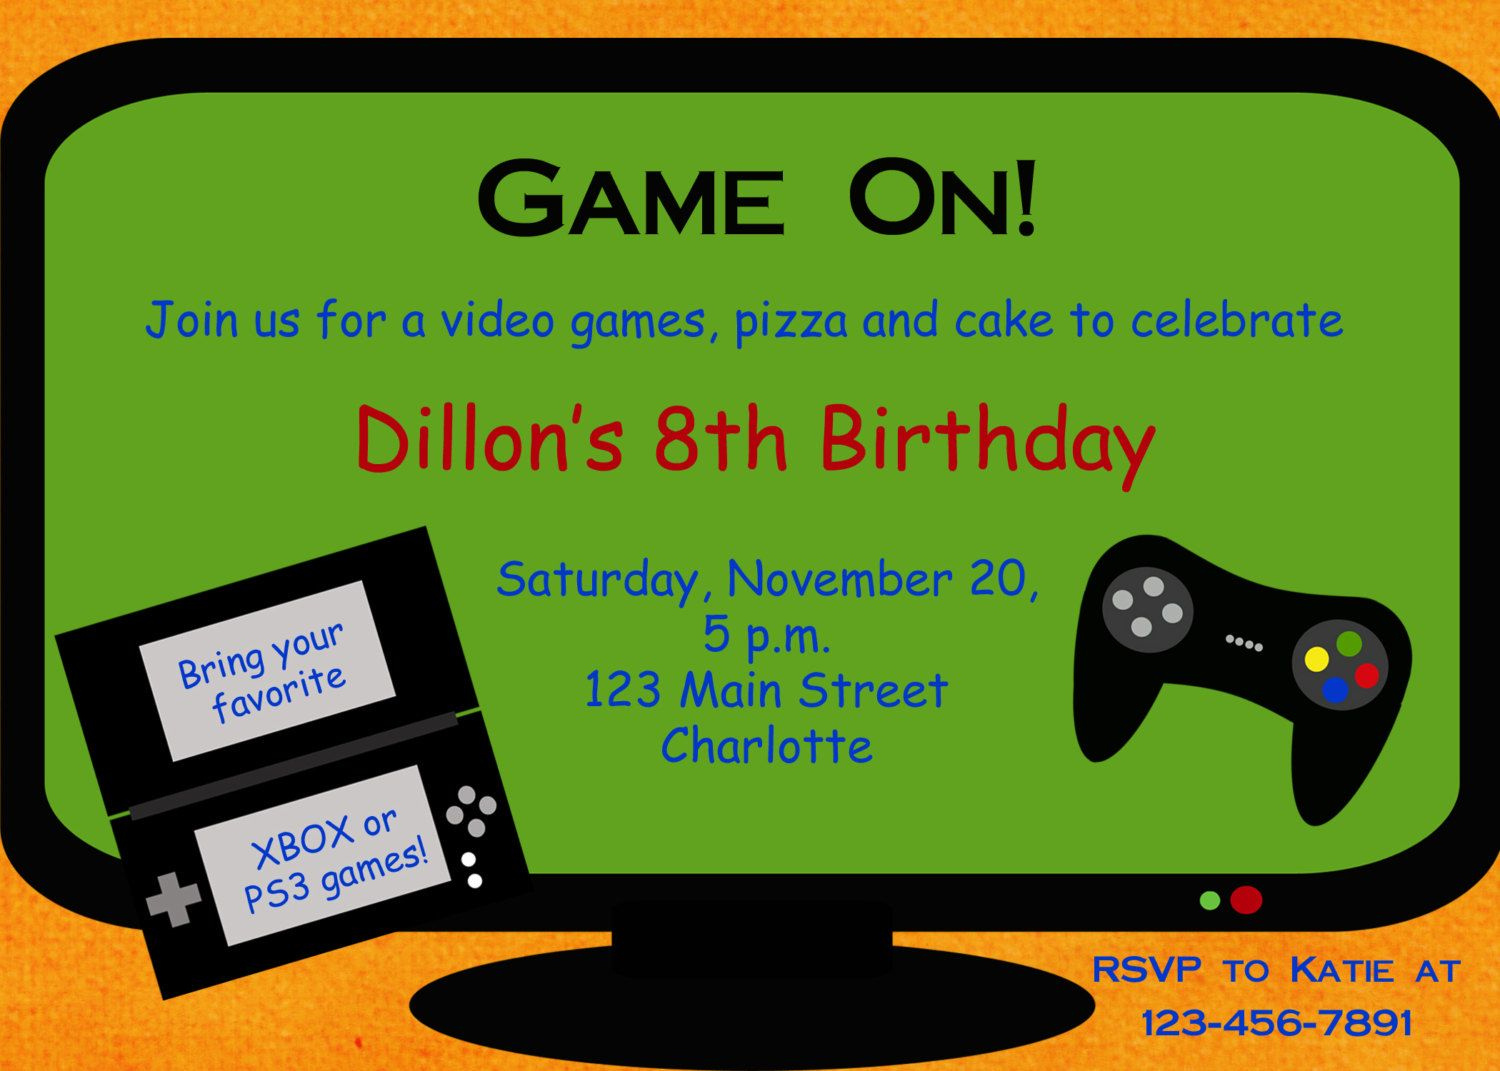 Video Game Party Invitation Template Free - Google Search   Party Ideas - Free Printable Video Game Party Invitations